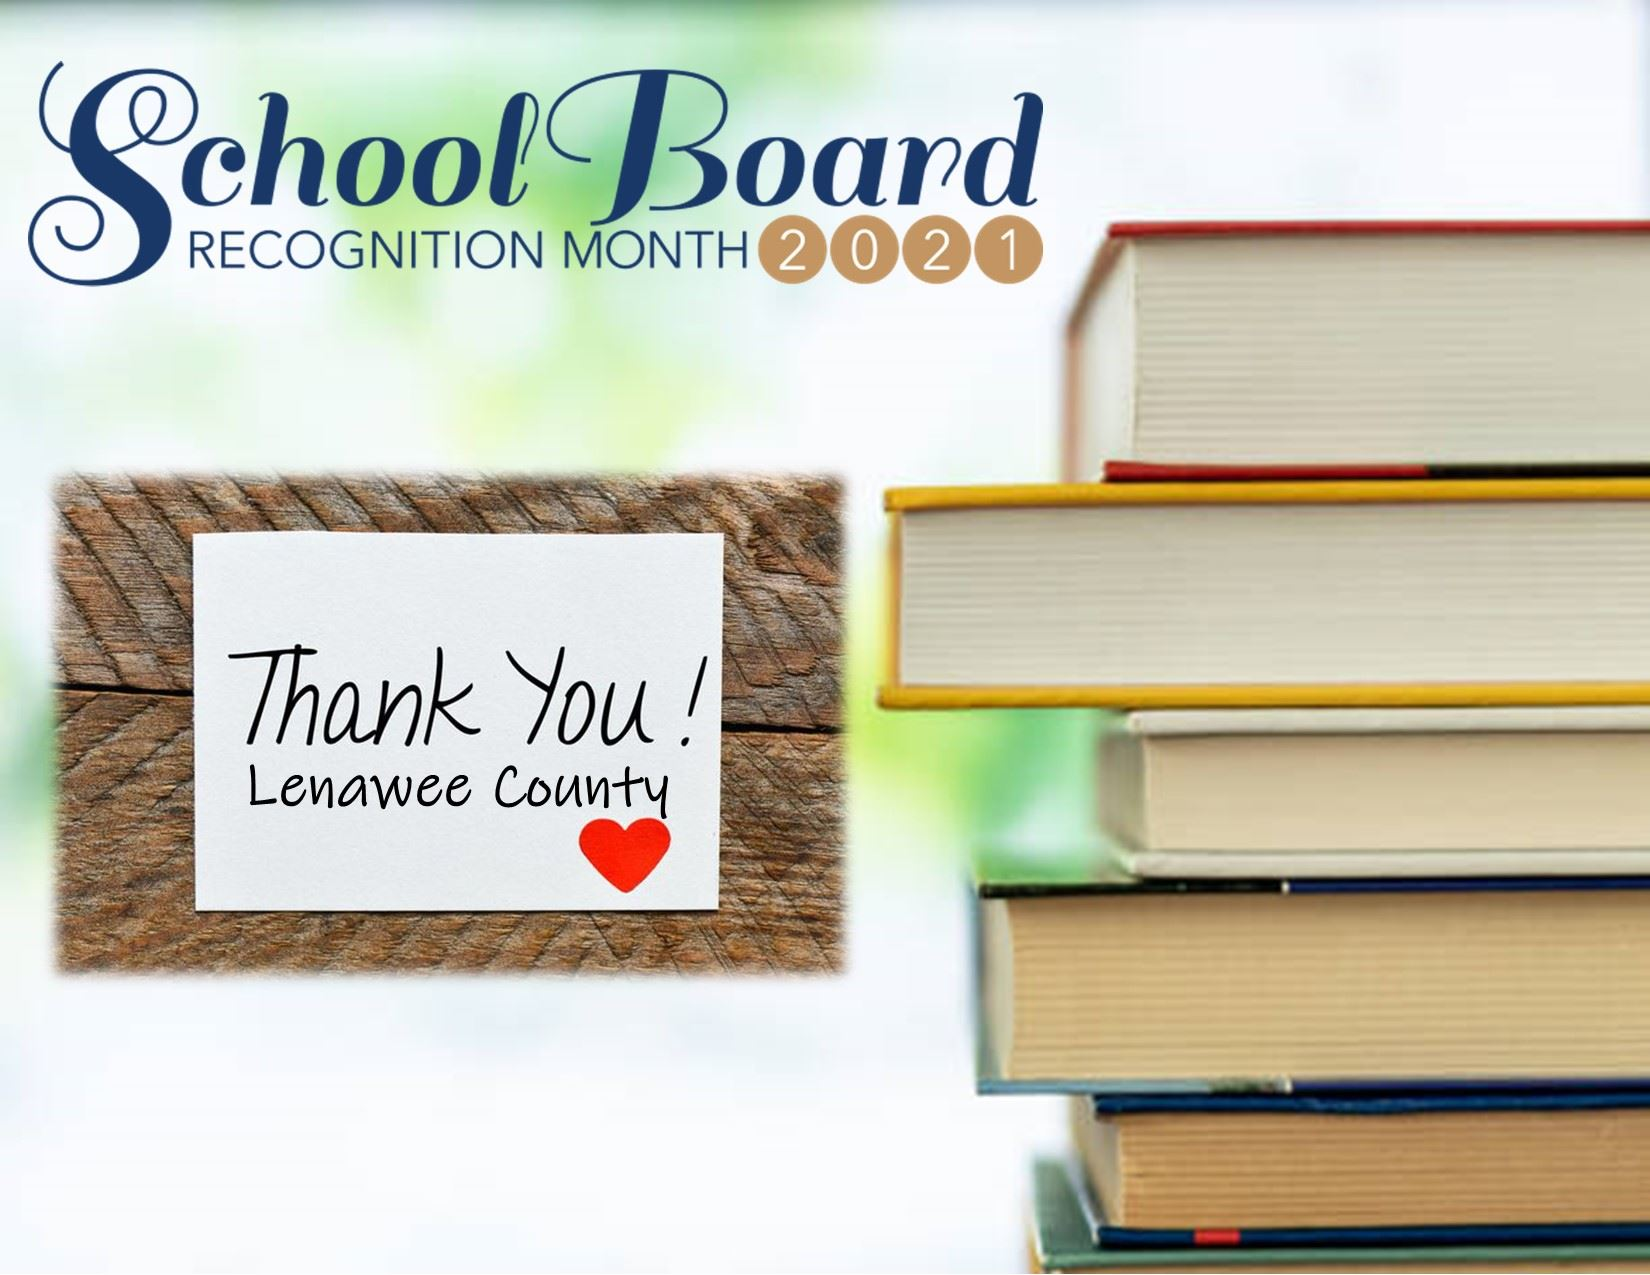 School Board Recognition